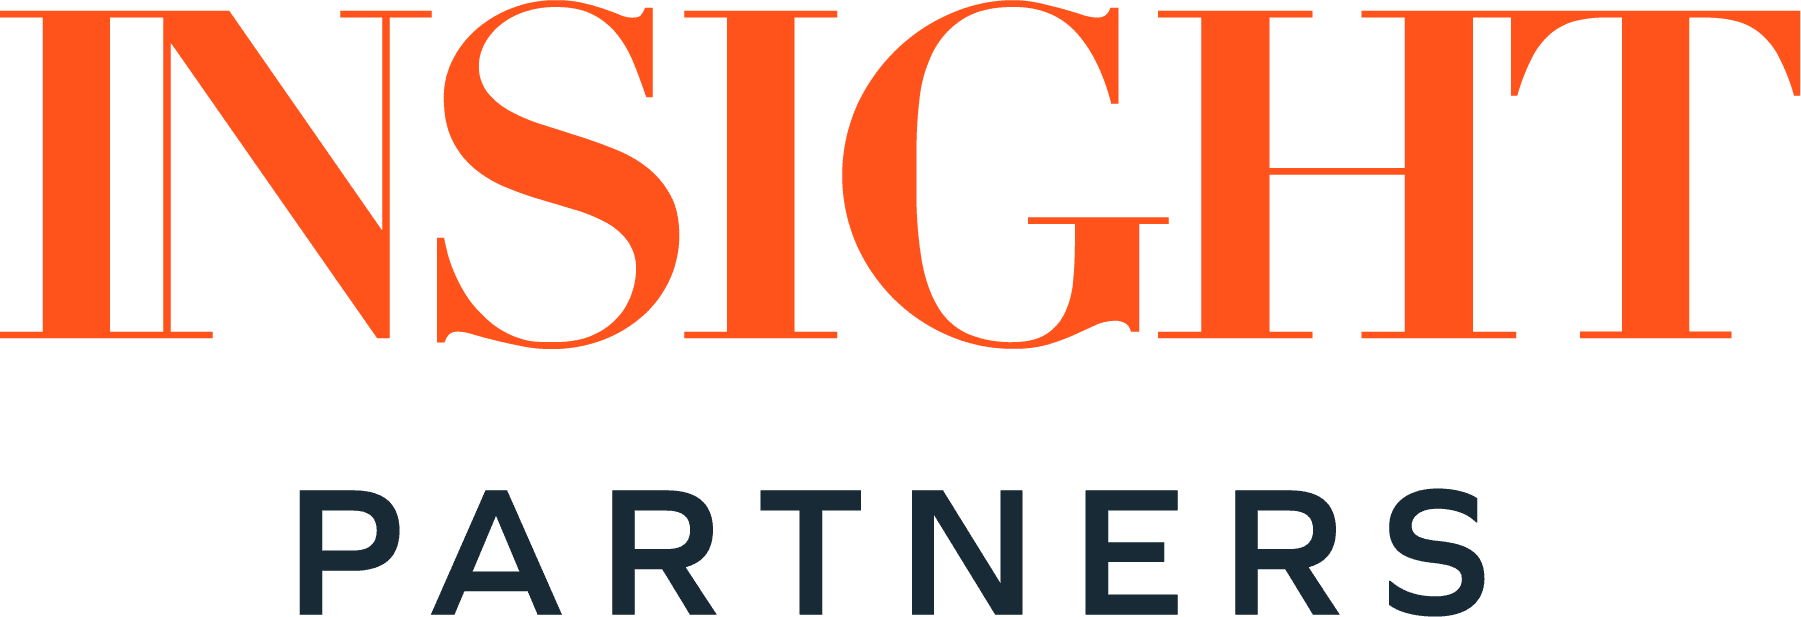 insight partners - crunchbase investor profile & investments